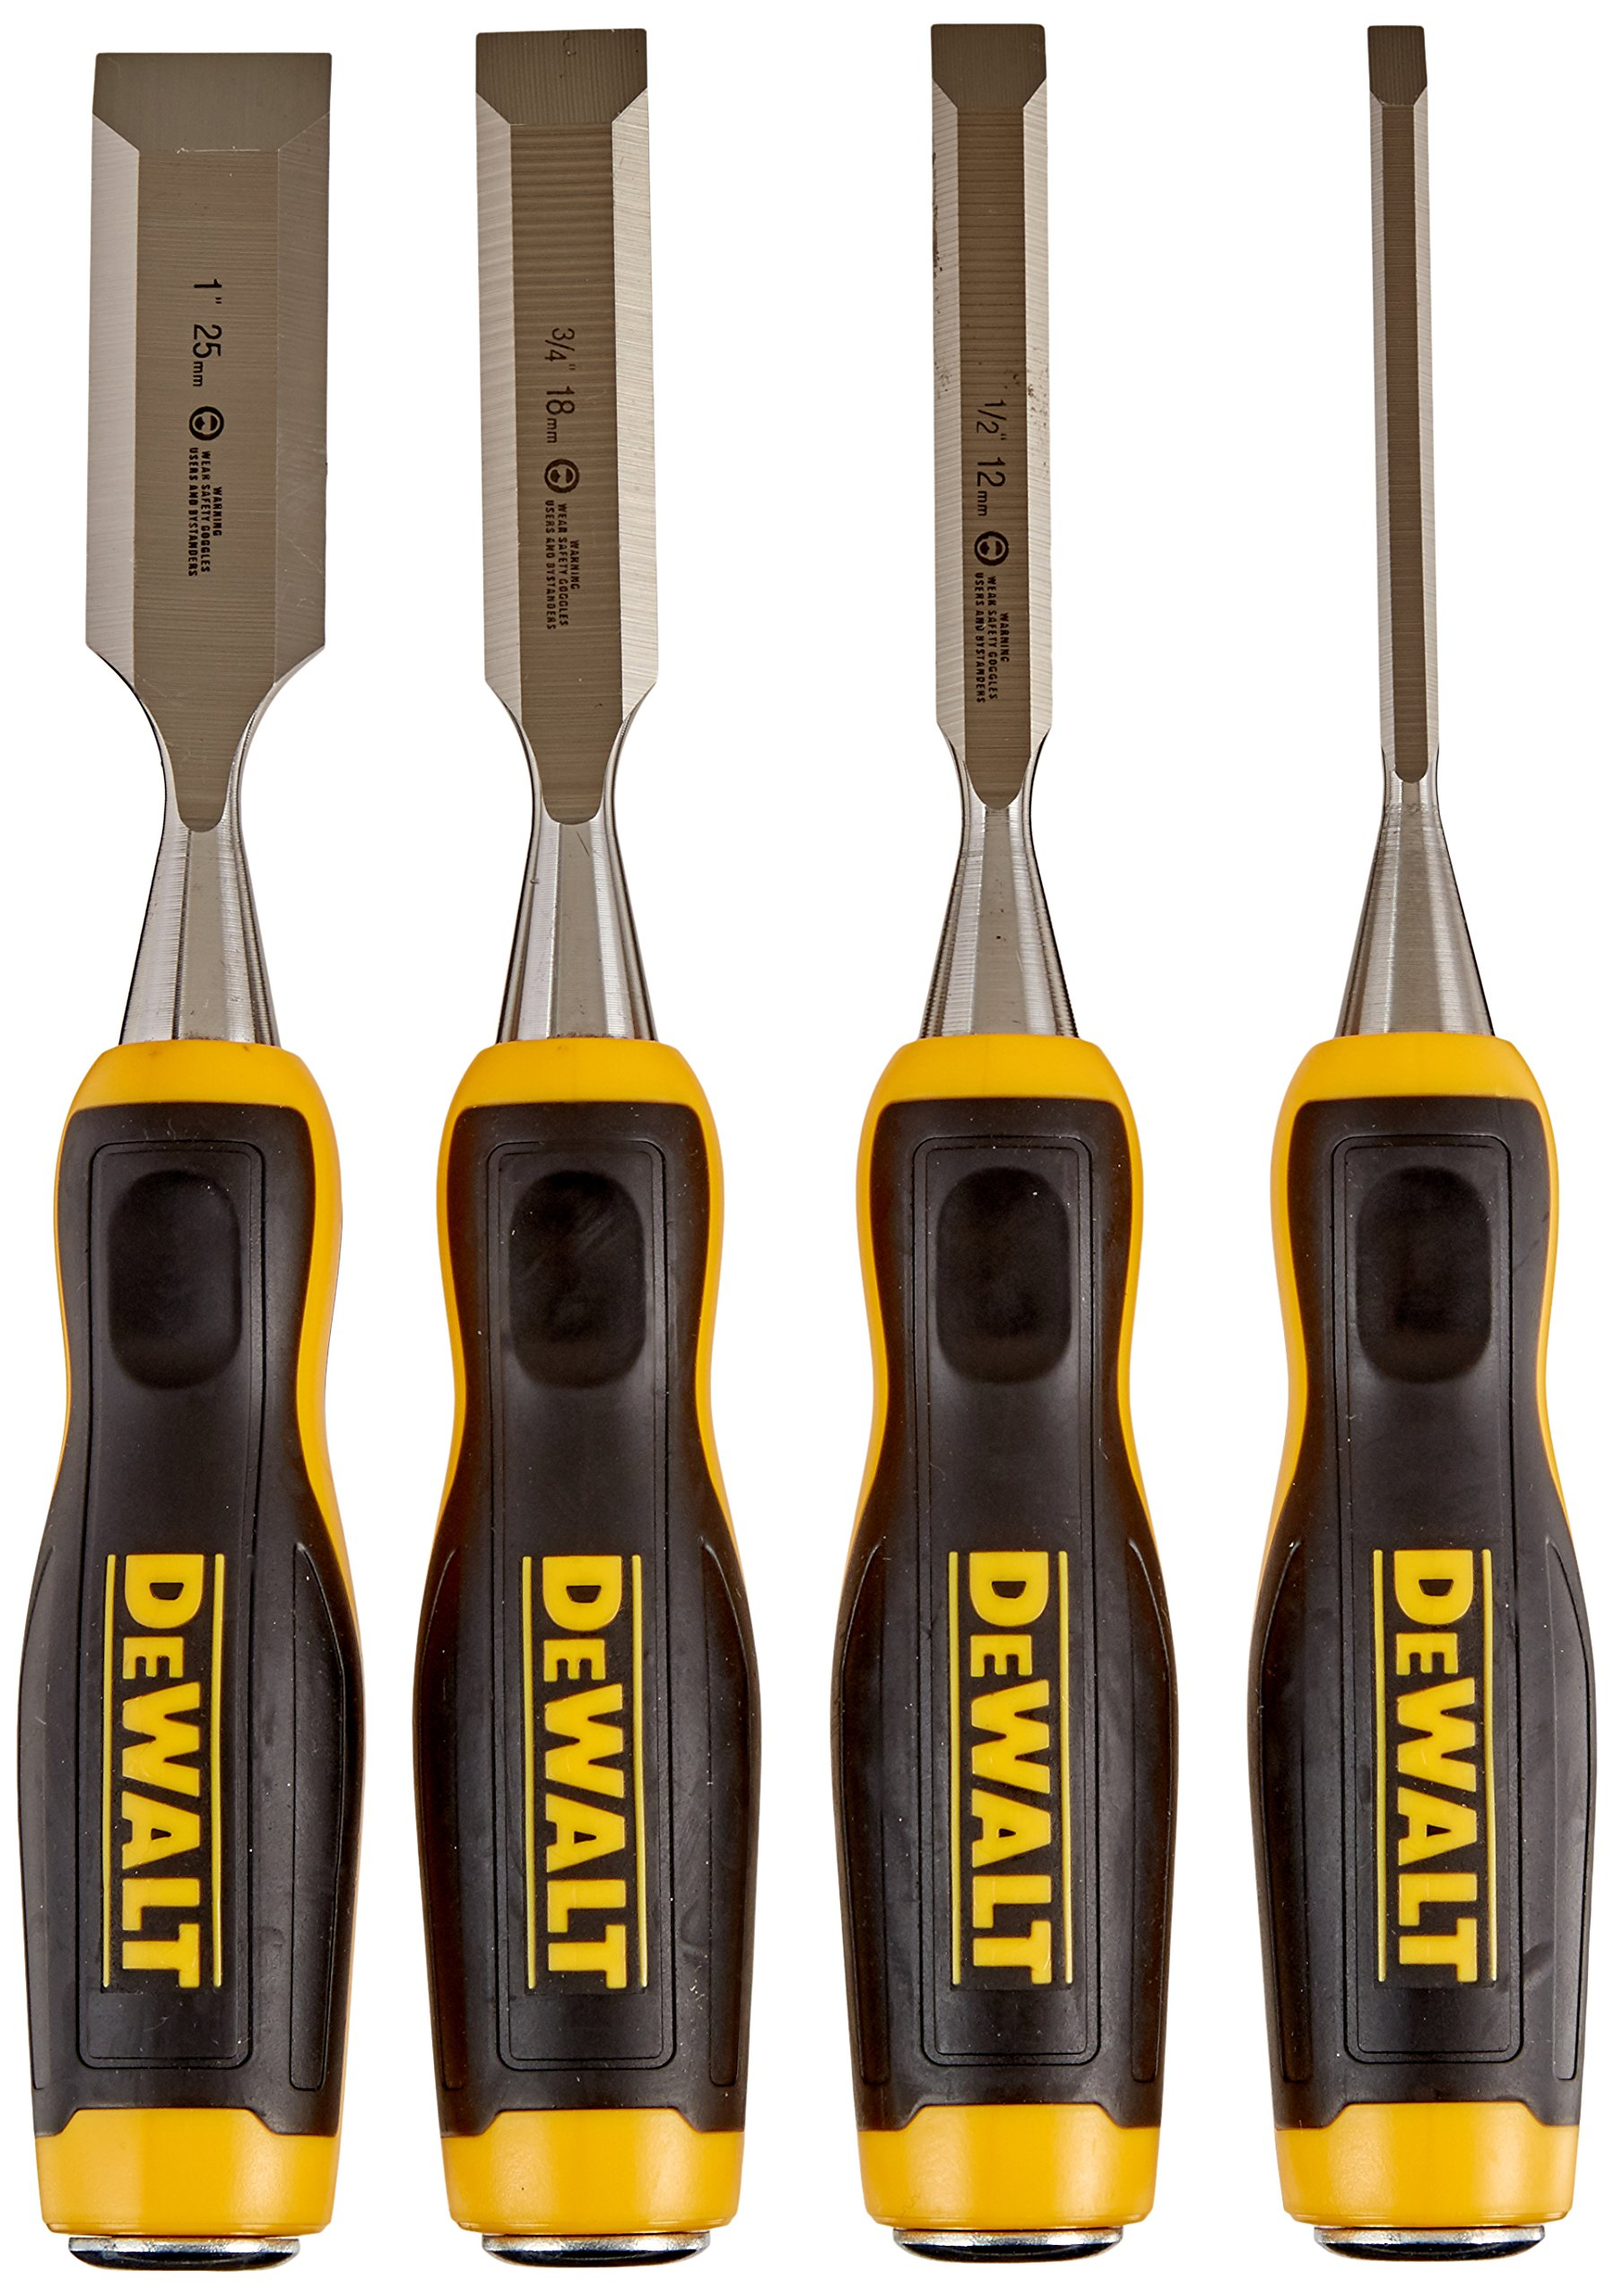 DEWALT DWHT16063 Short Blade Wood Chisel 4piece set by DEWALT